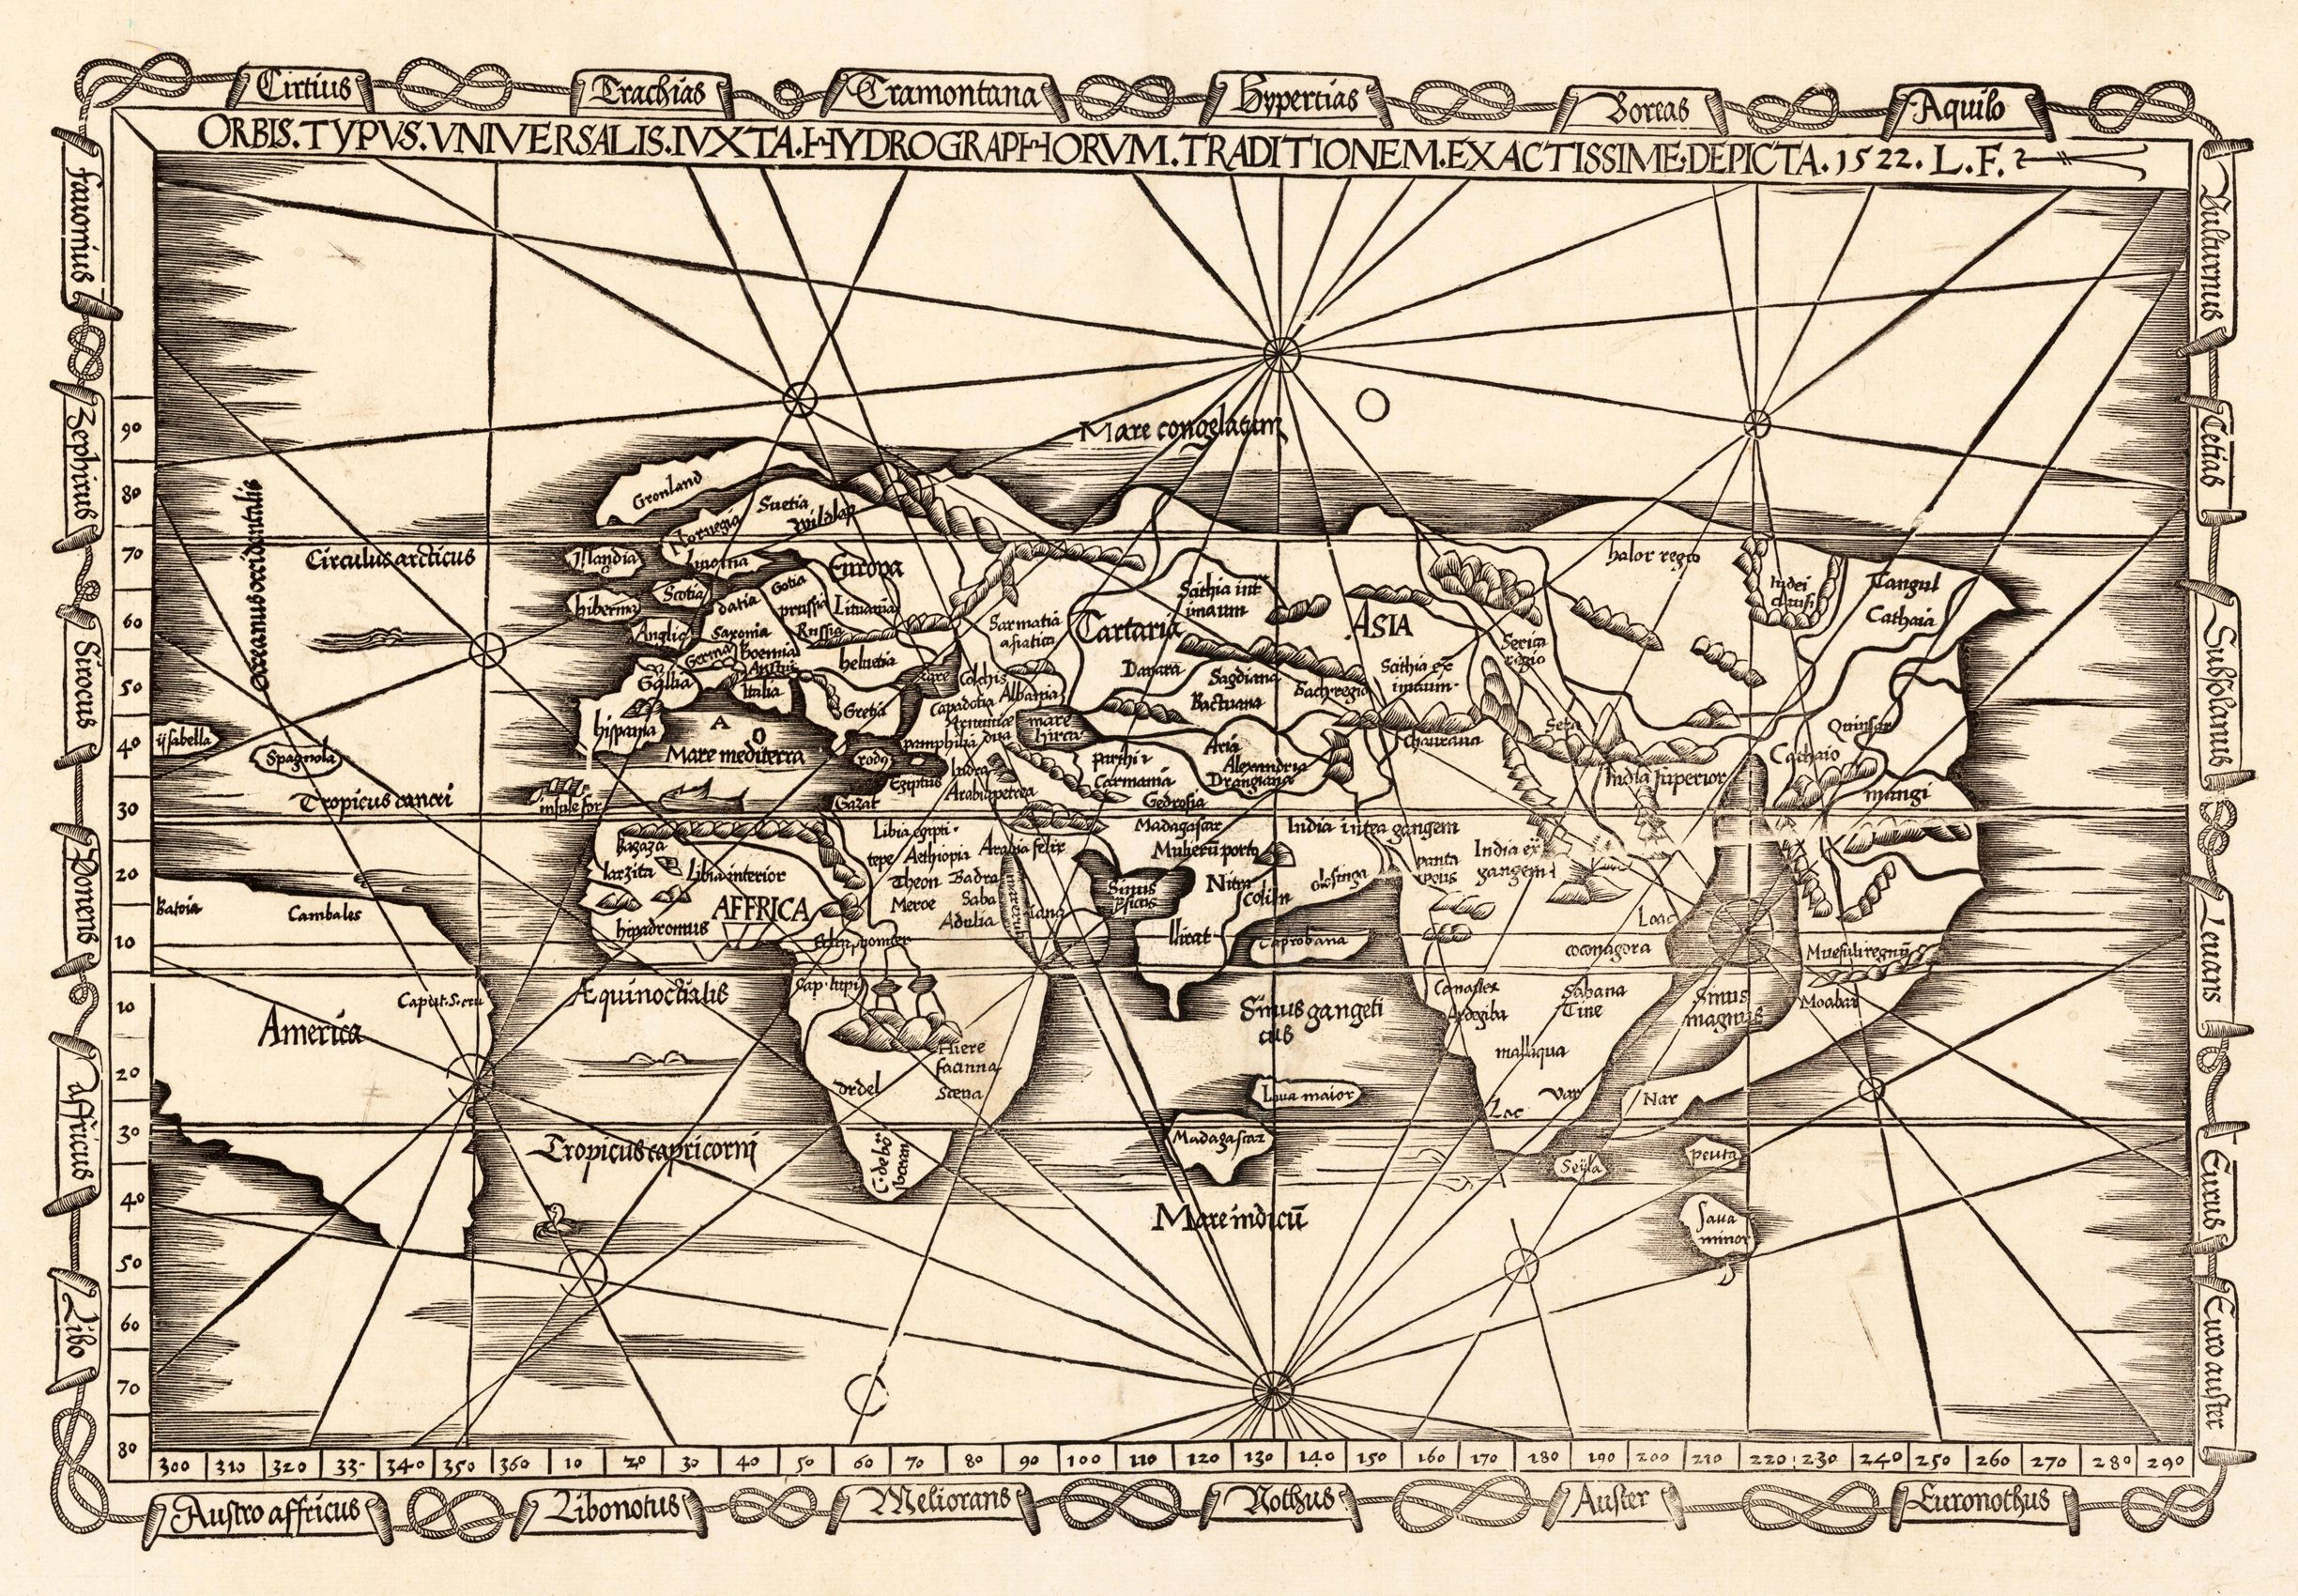 Early woodcut map of the world published in laurent fries antique mapart 1535 l fries orbis typus universalis iux antique map of australiaworld gumiabroncs Gallery